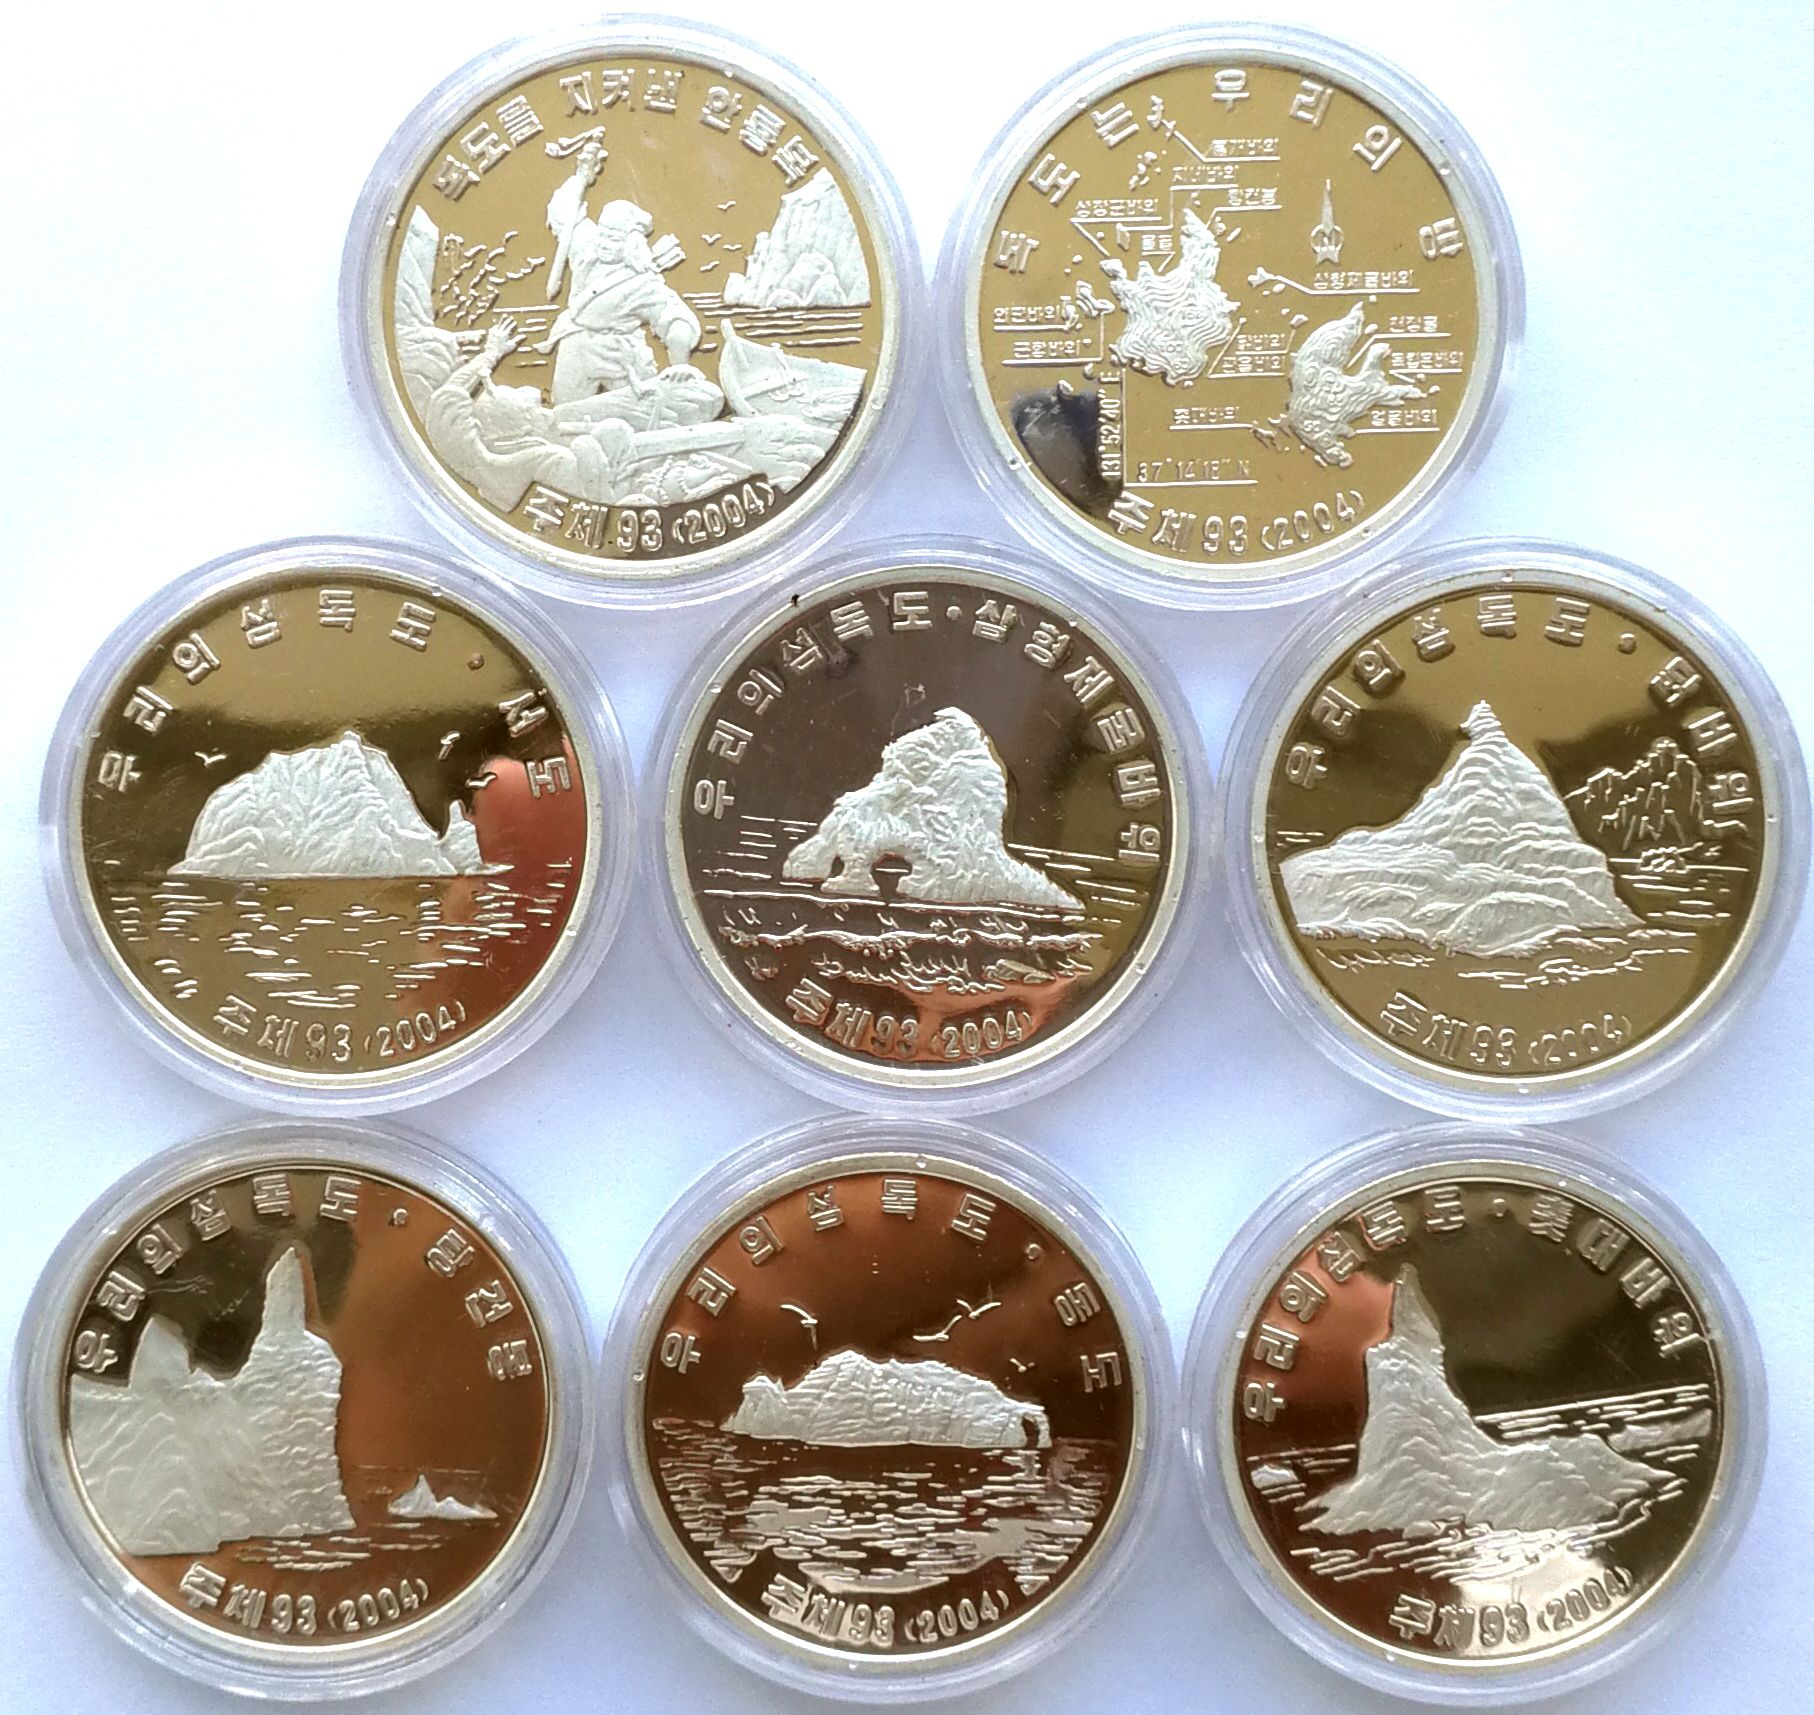 L3402, Korea Dokdo Silver Proof Coins 2004, 1 oz, Full Set 8 Pcs Rare